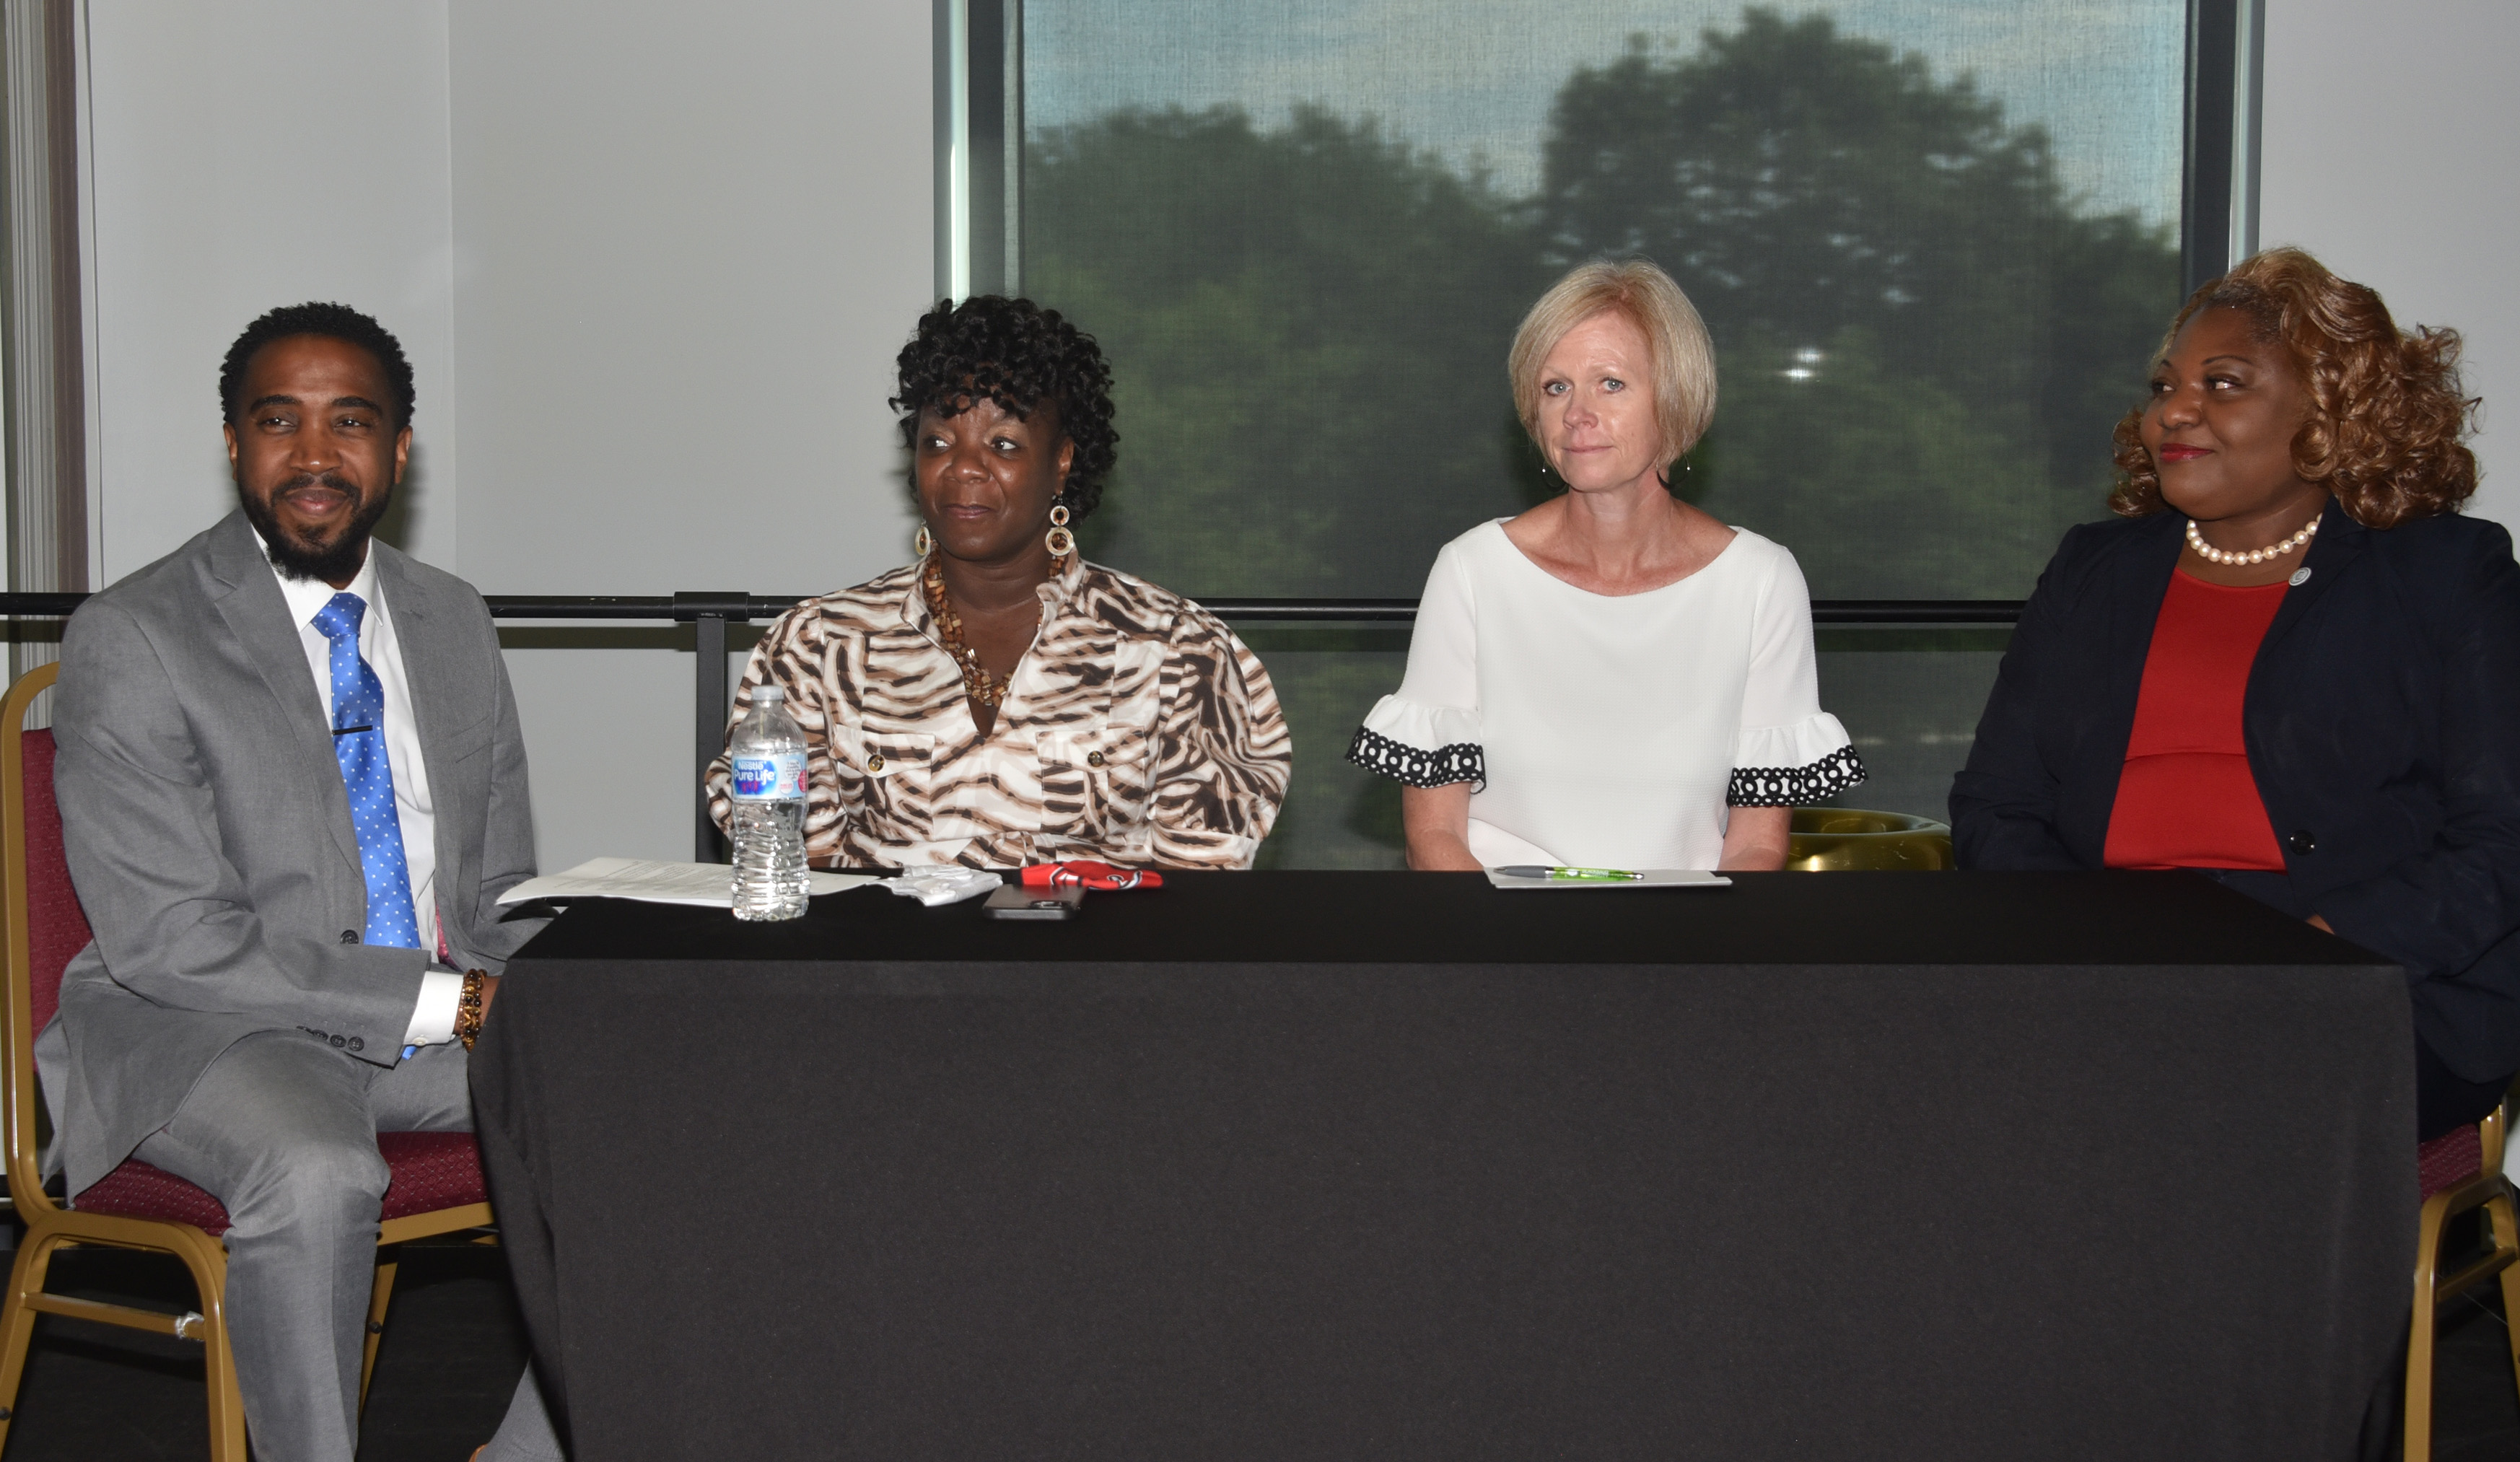 (l-r) Dr. Terrell Holmes, Dr. Stacy Downing, Laura Mayse, and Dr. Gwen Scott-Jones.